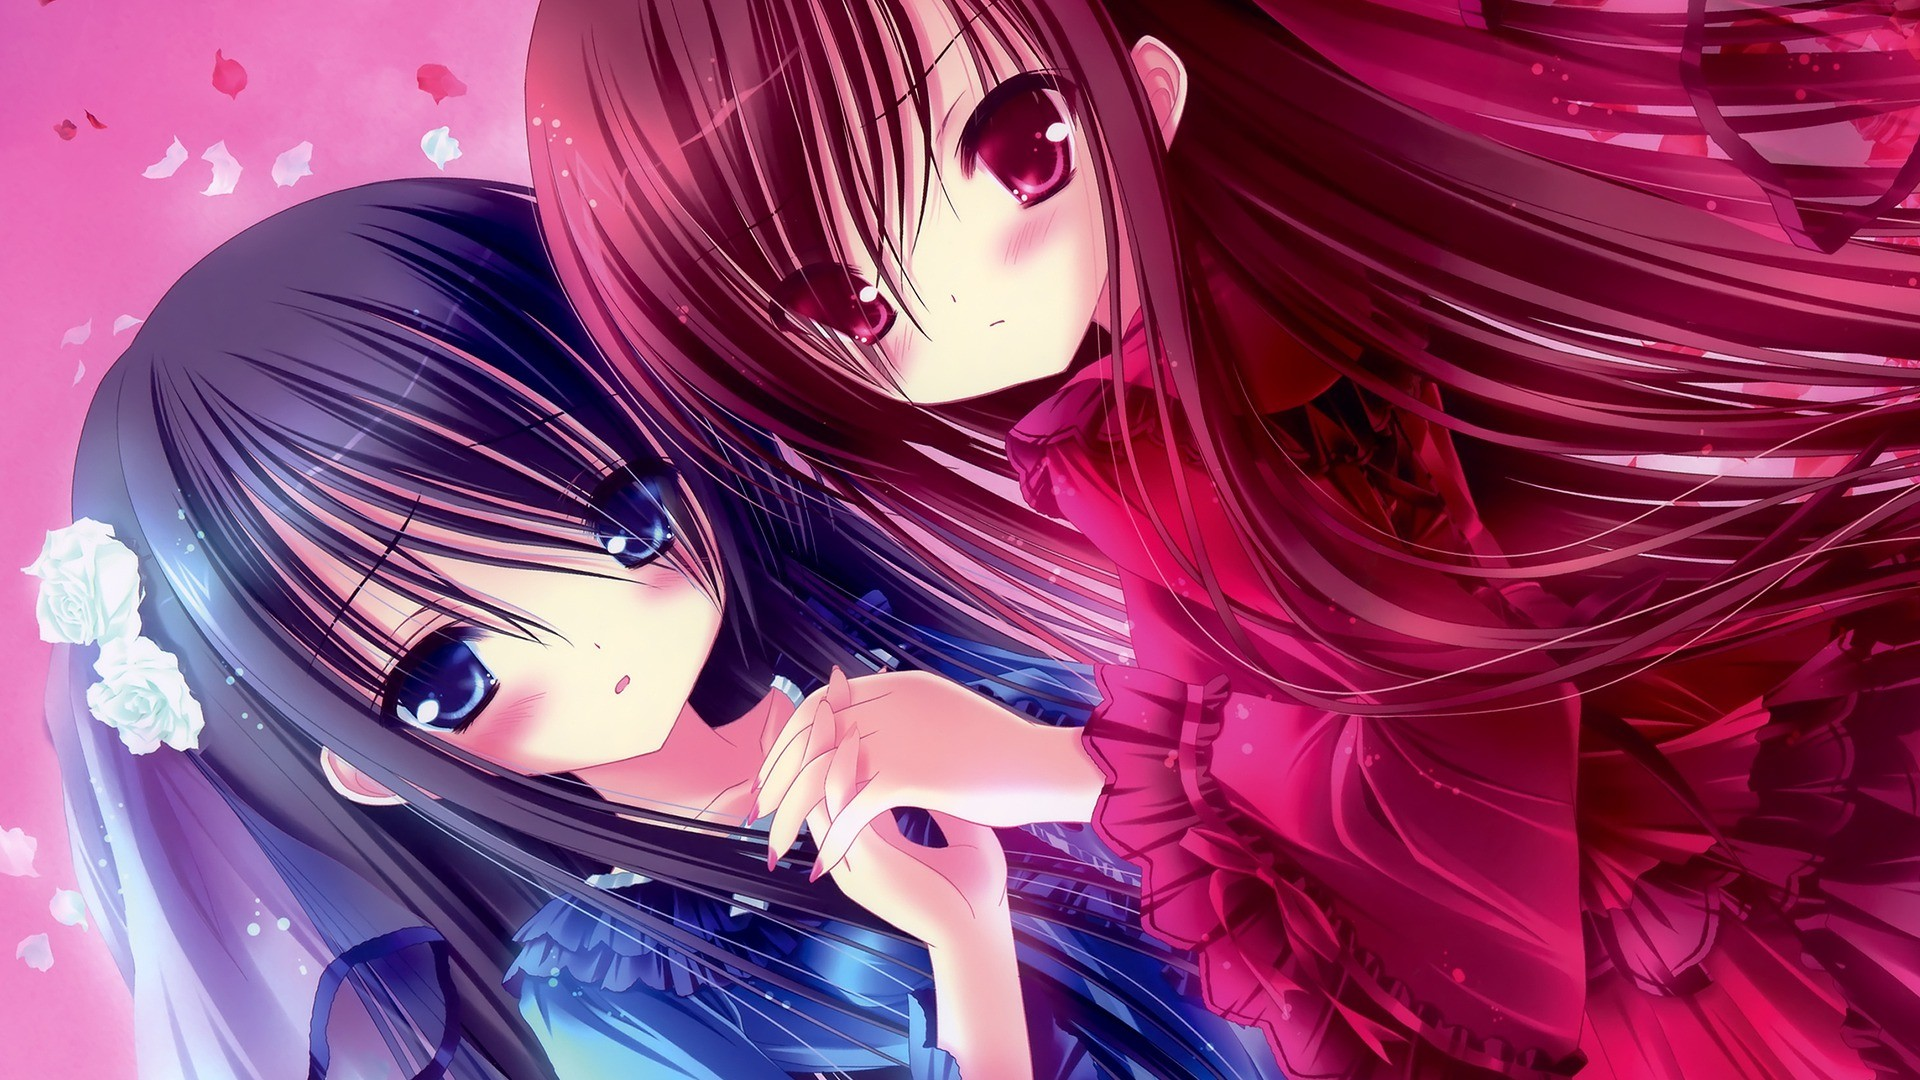 Anime girl background download free amazing full hd - Cute anime girl pictures ...